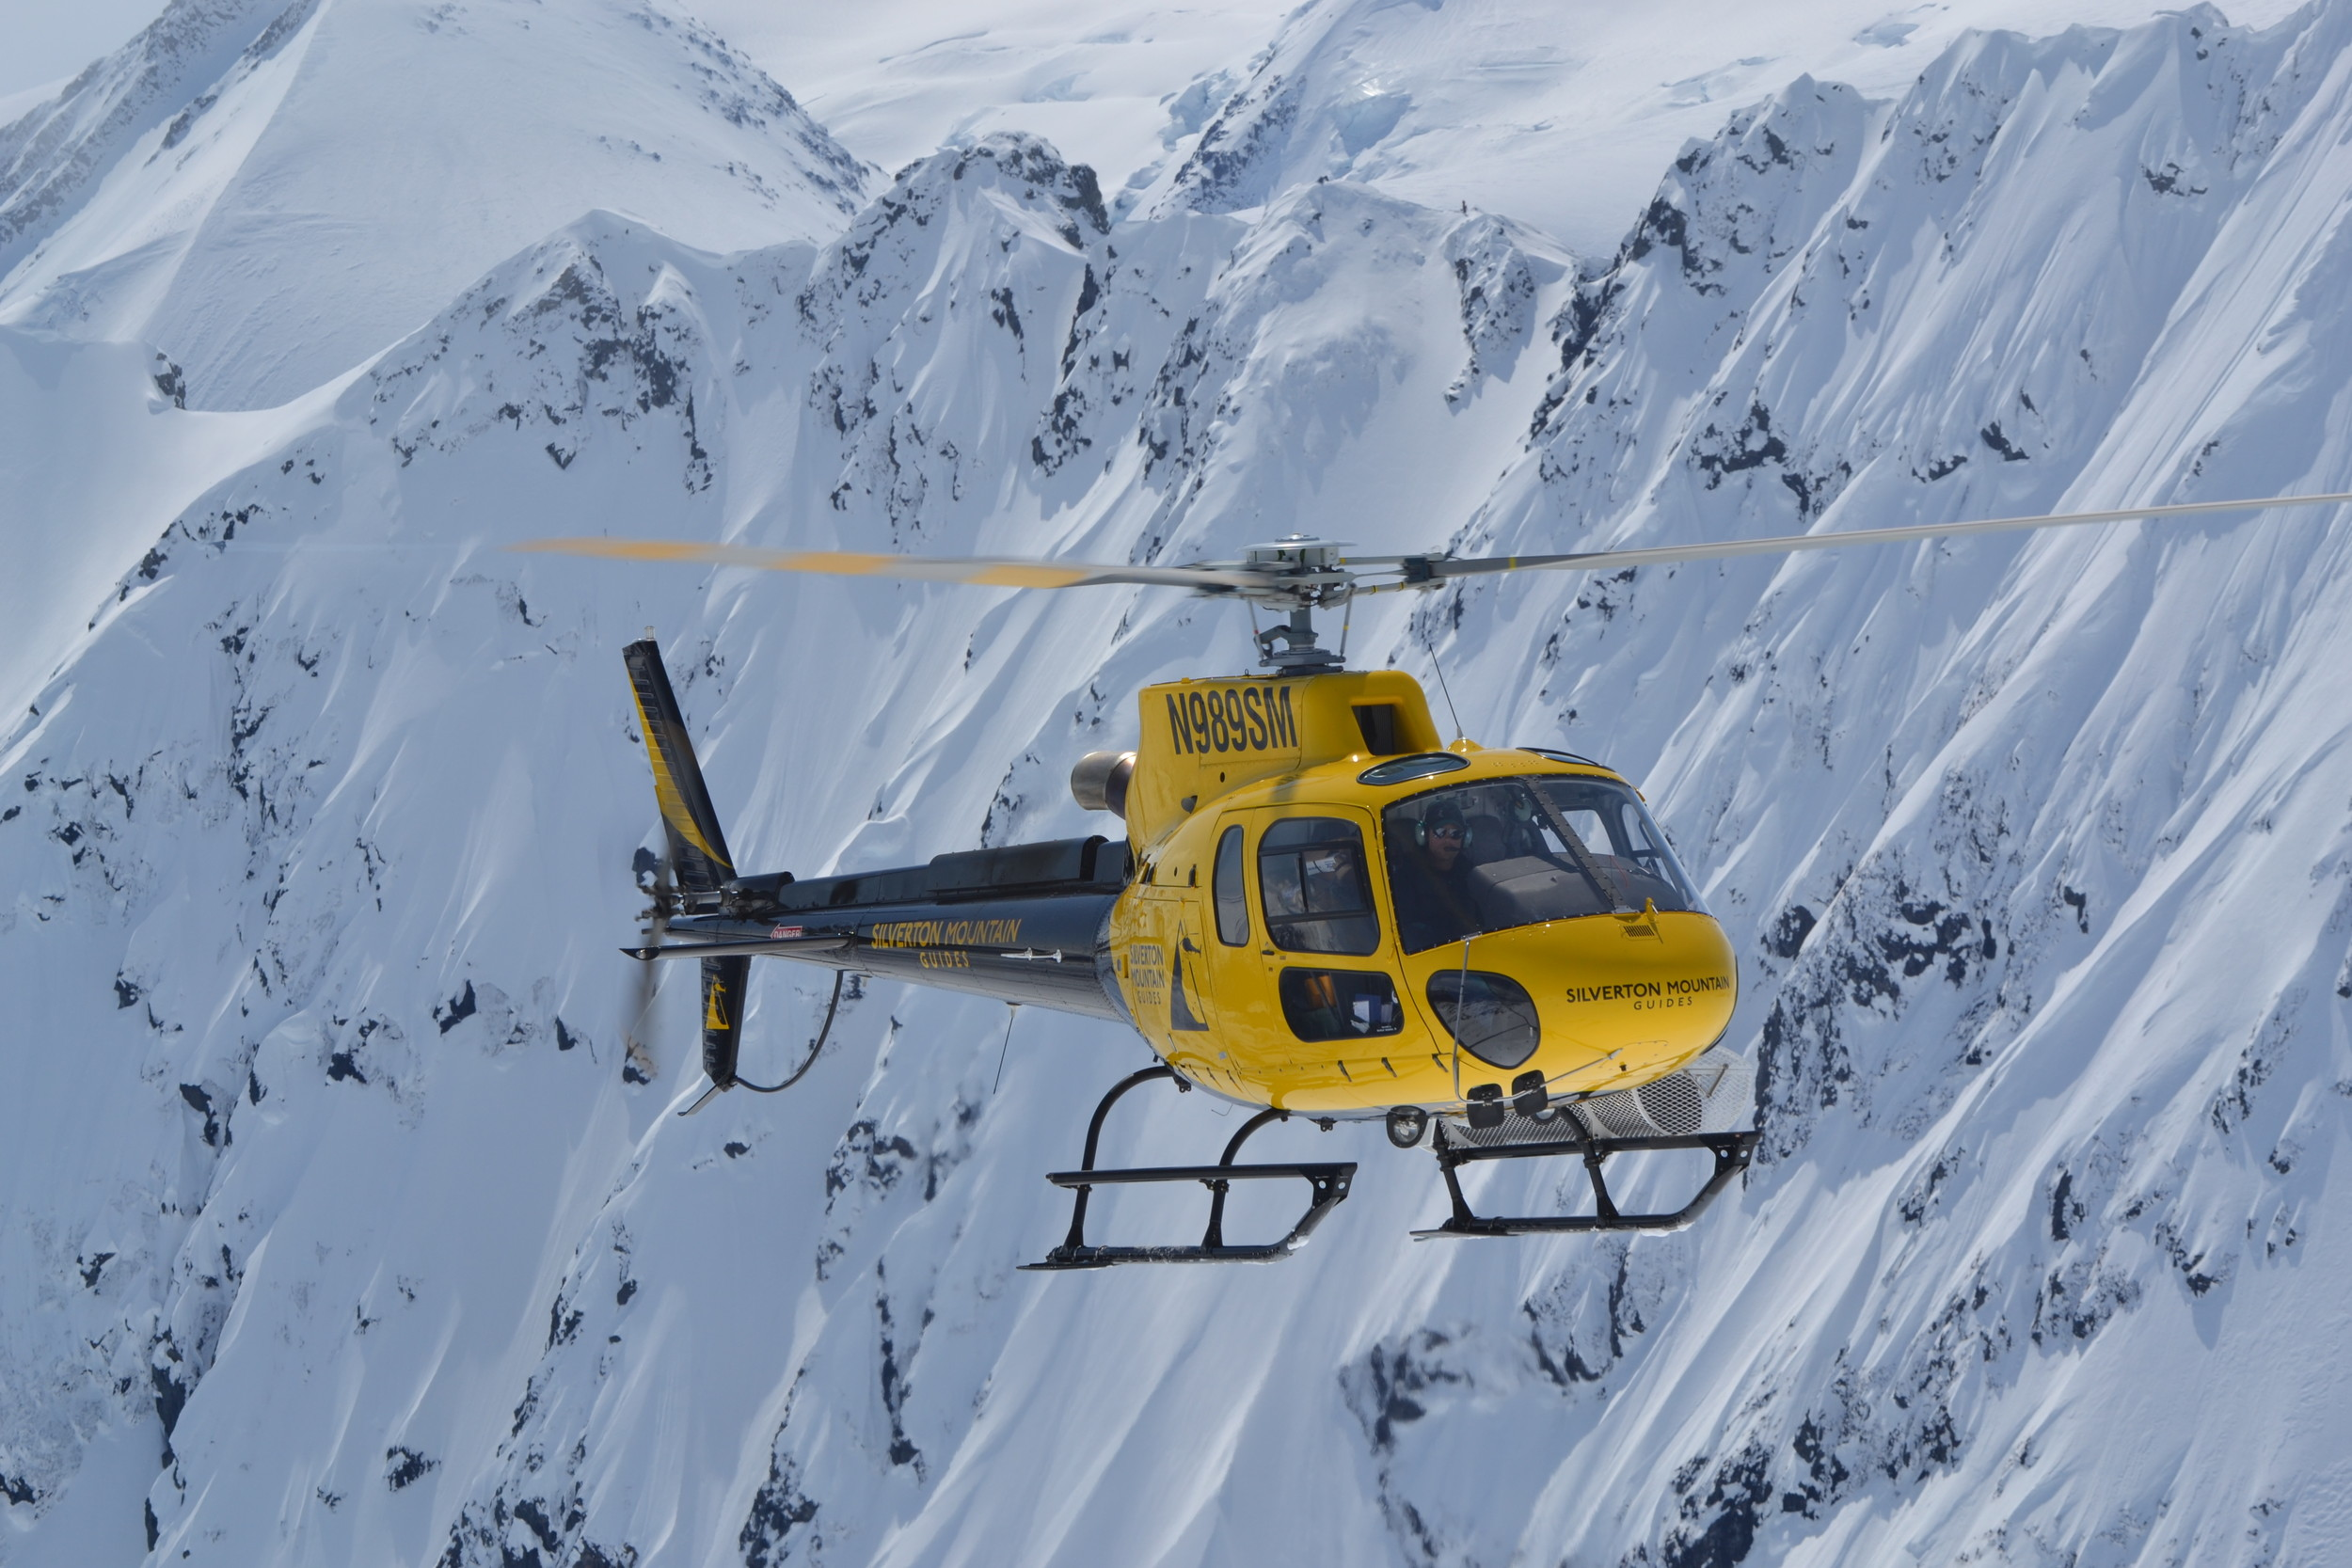 The chopper at Silverton Mountain.undefined